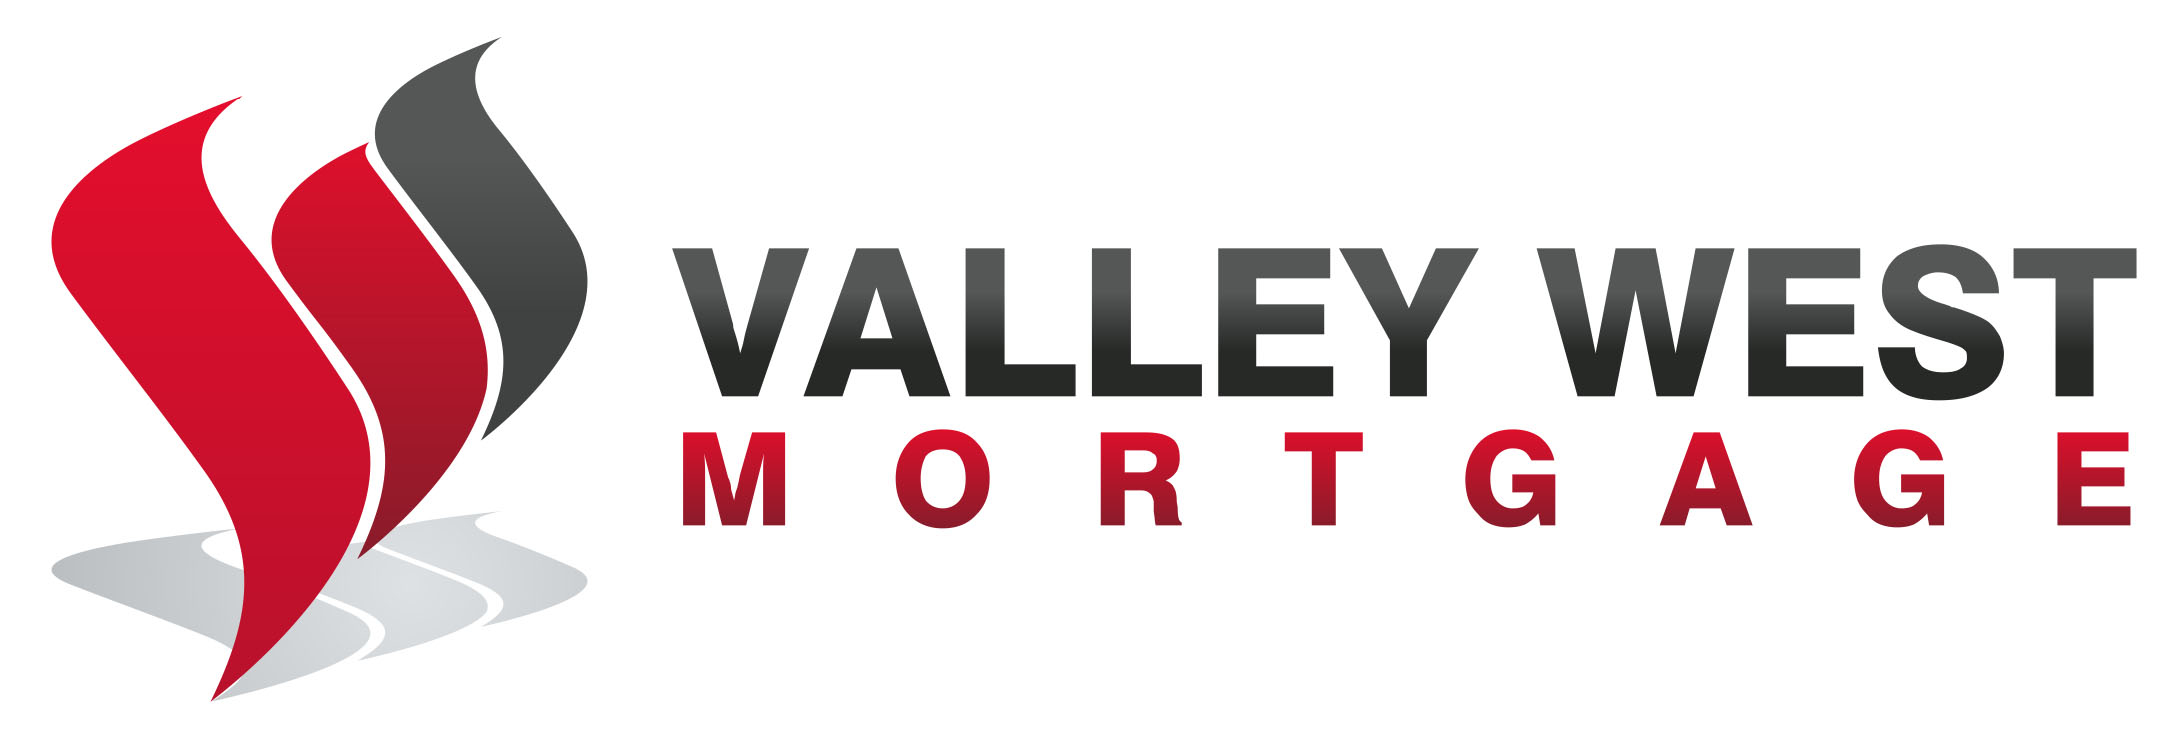 Valley West Mortgage